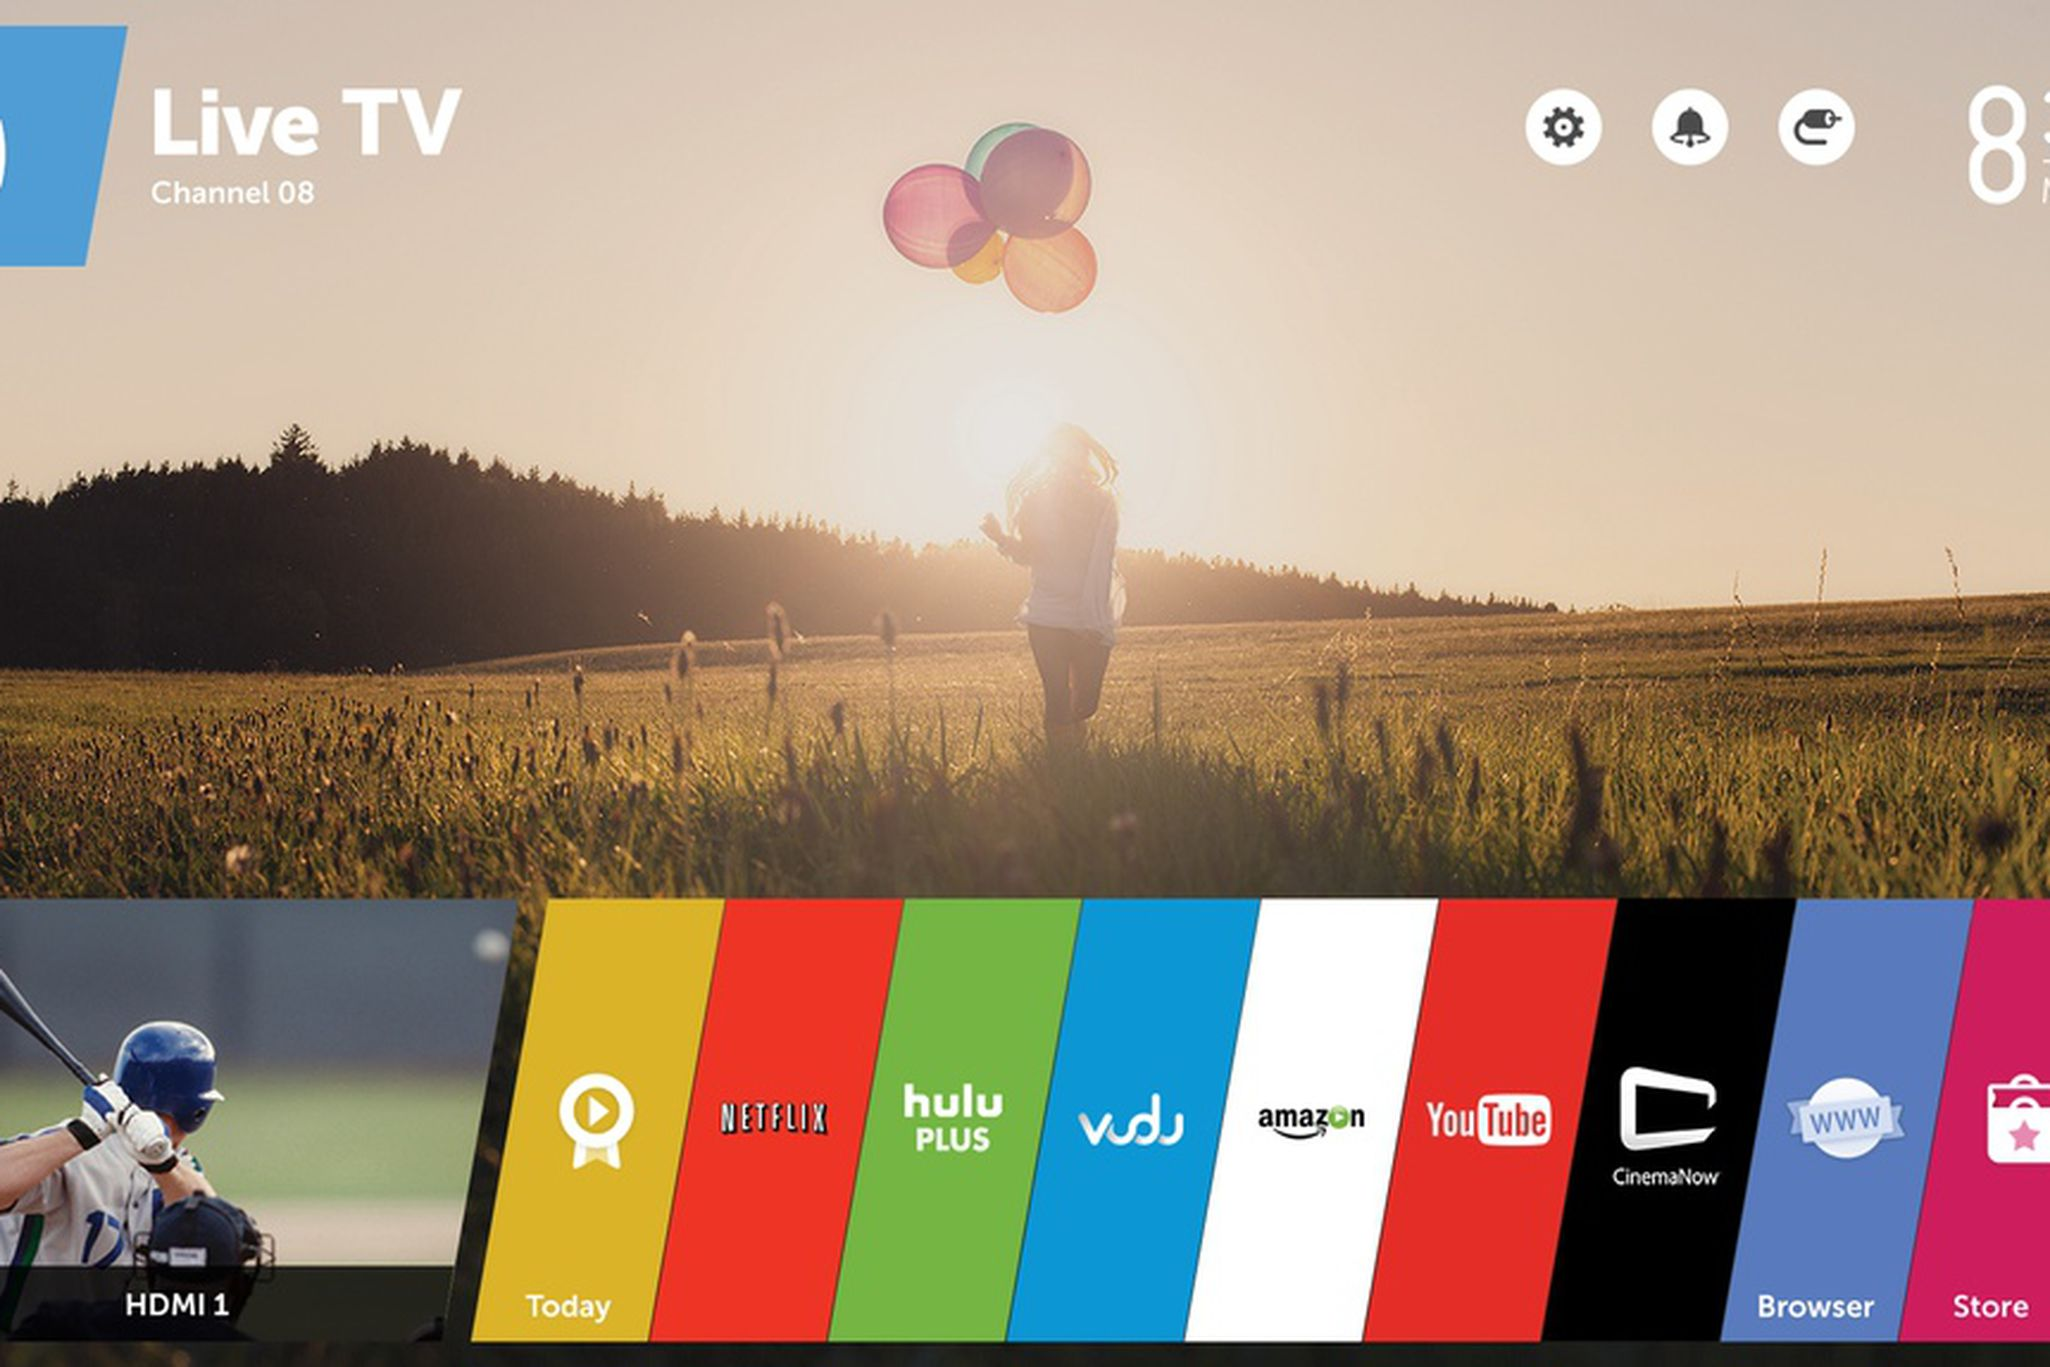 Rebooting webOS: how LG rethought the smart TV | The Verge